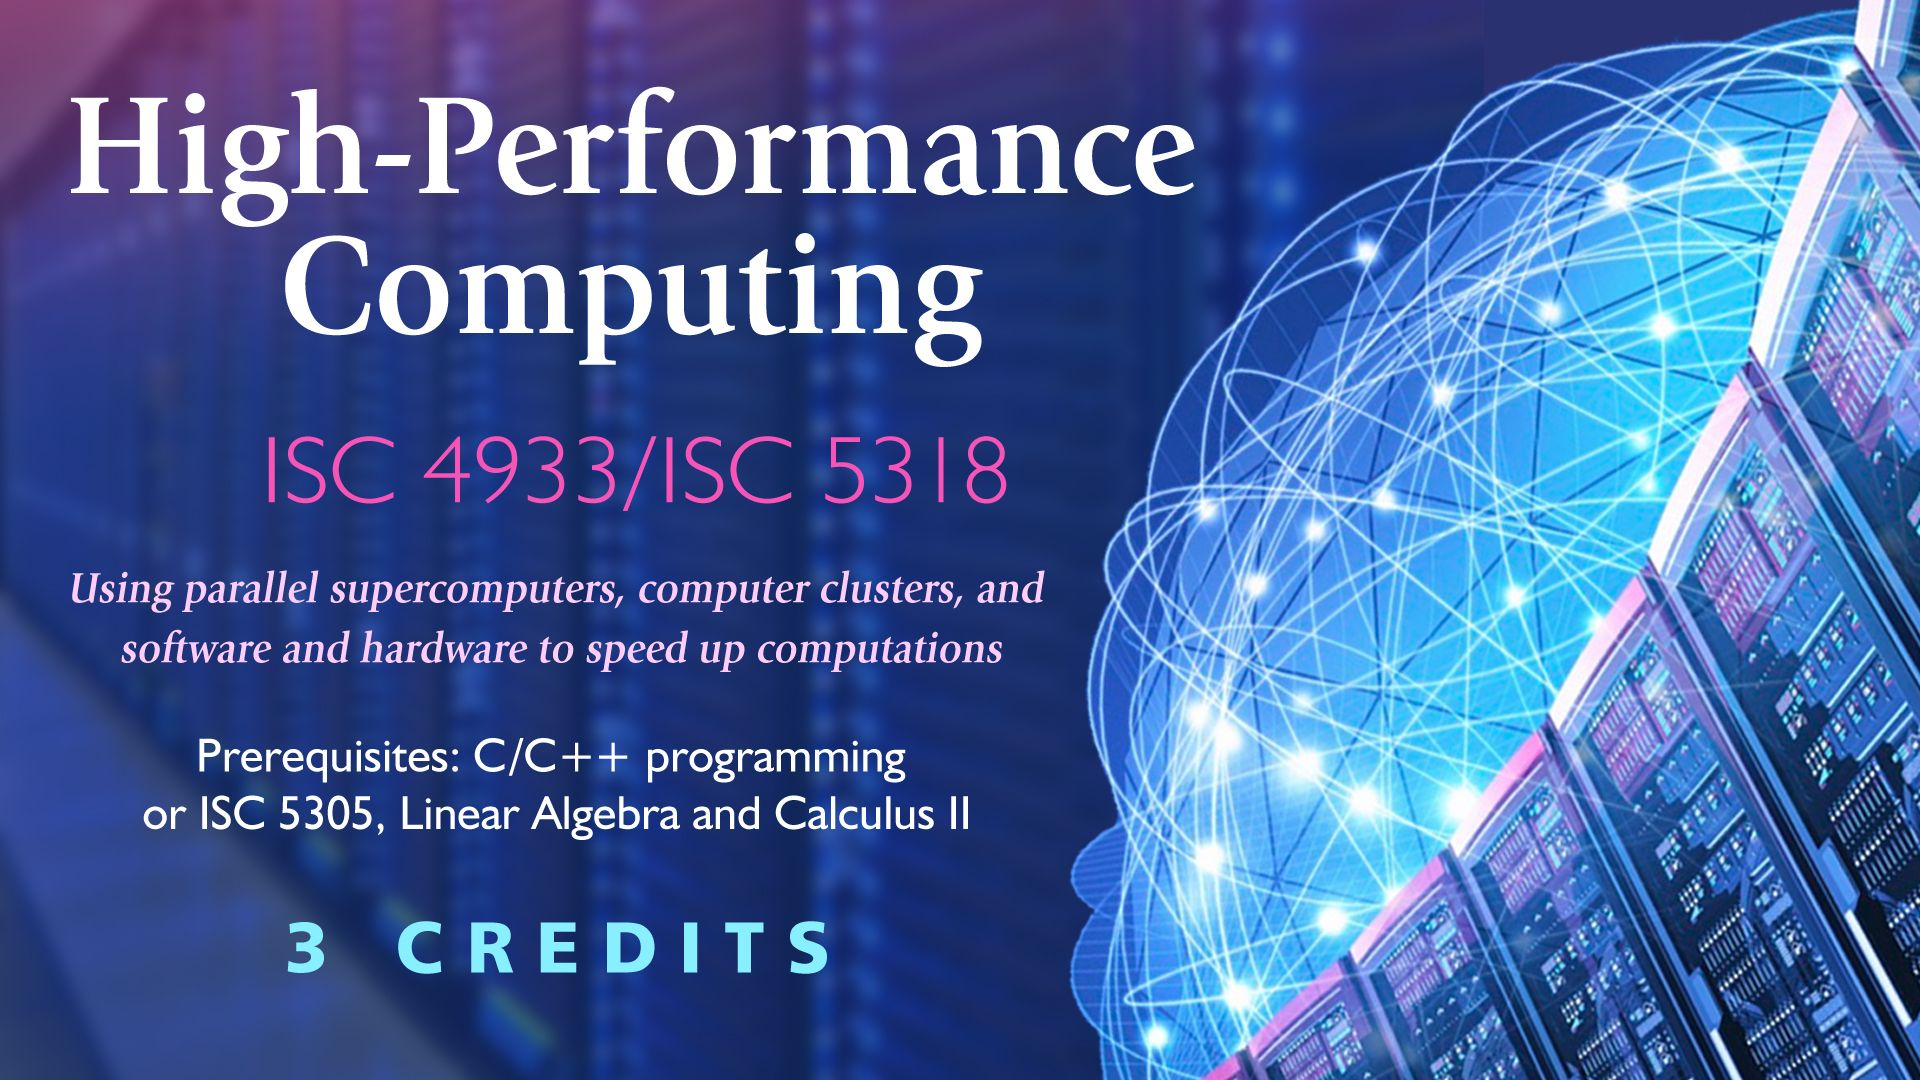 ISC 4933/5318 - High-Performance Computing